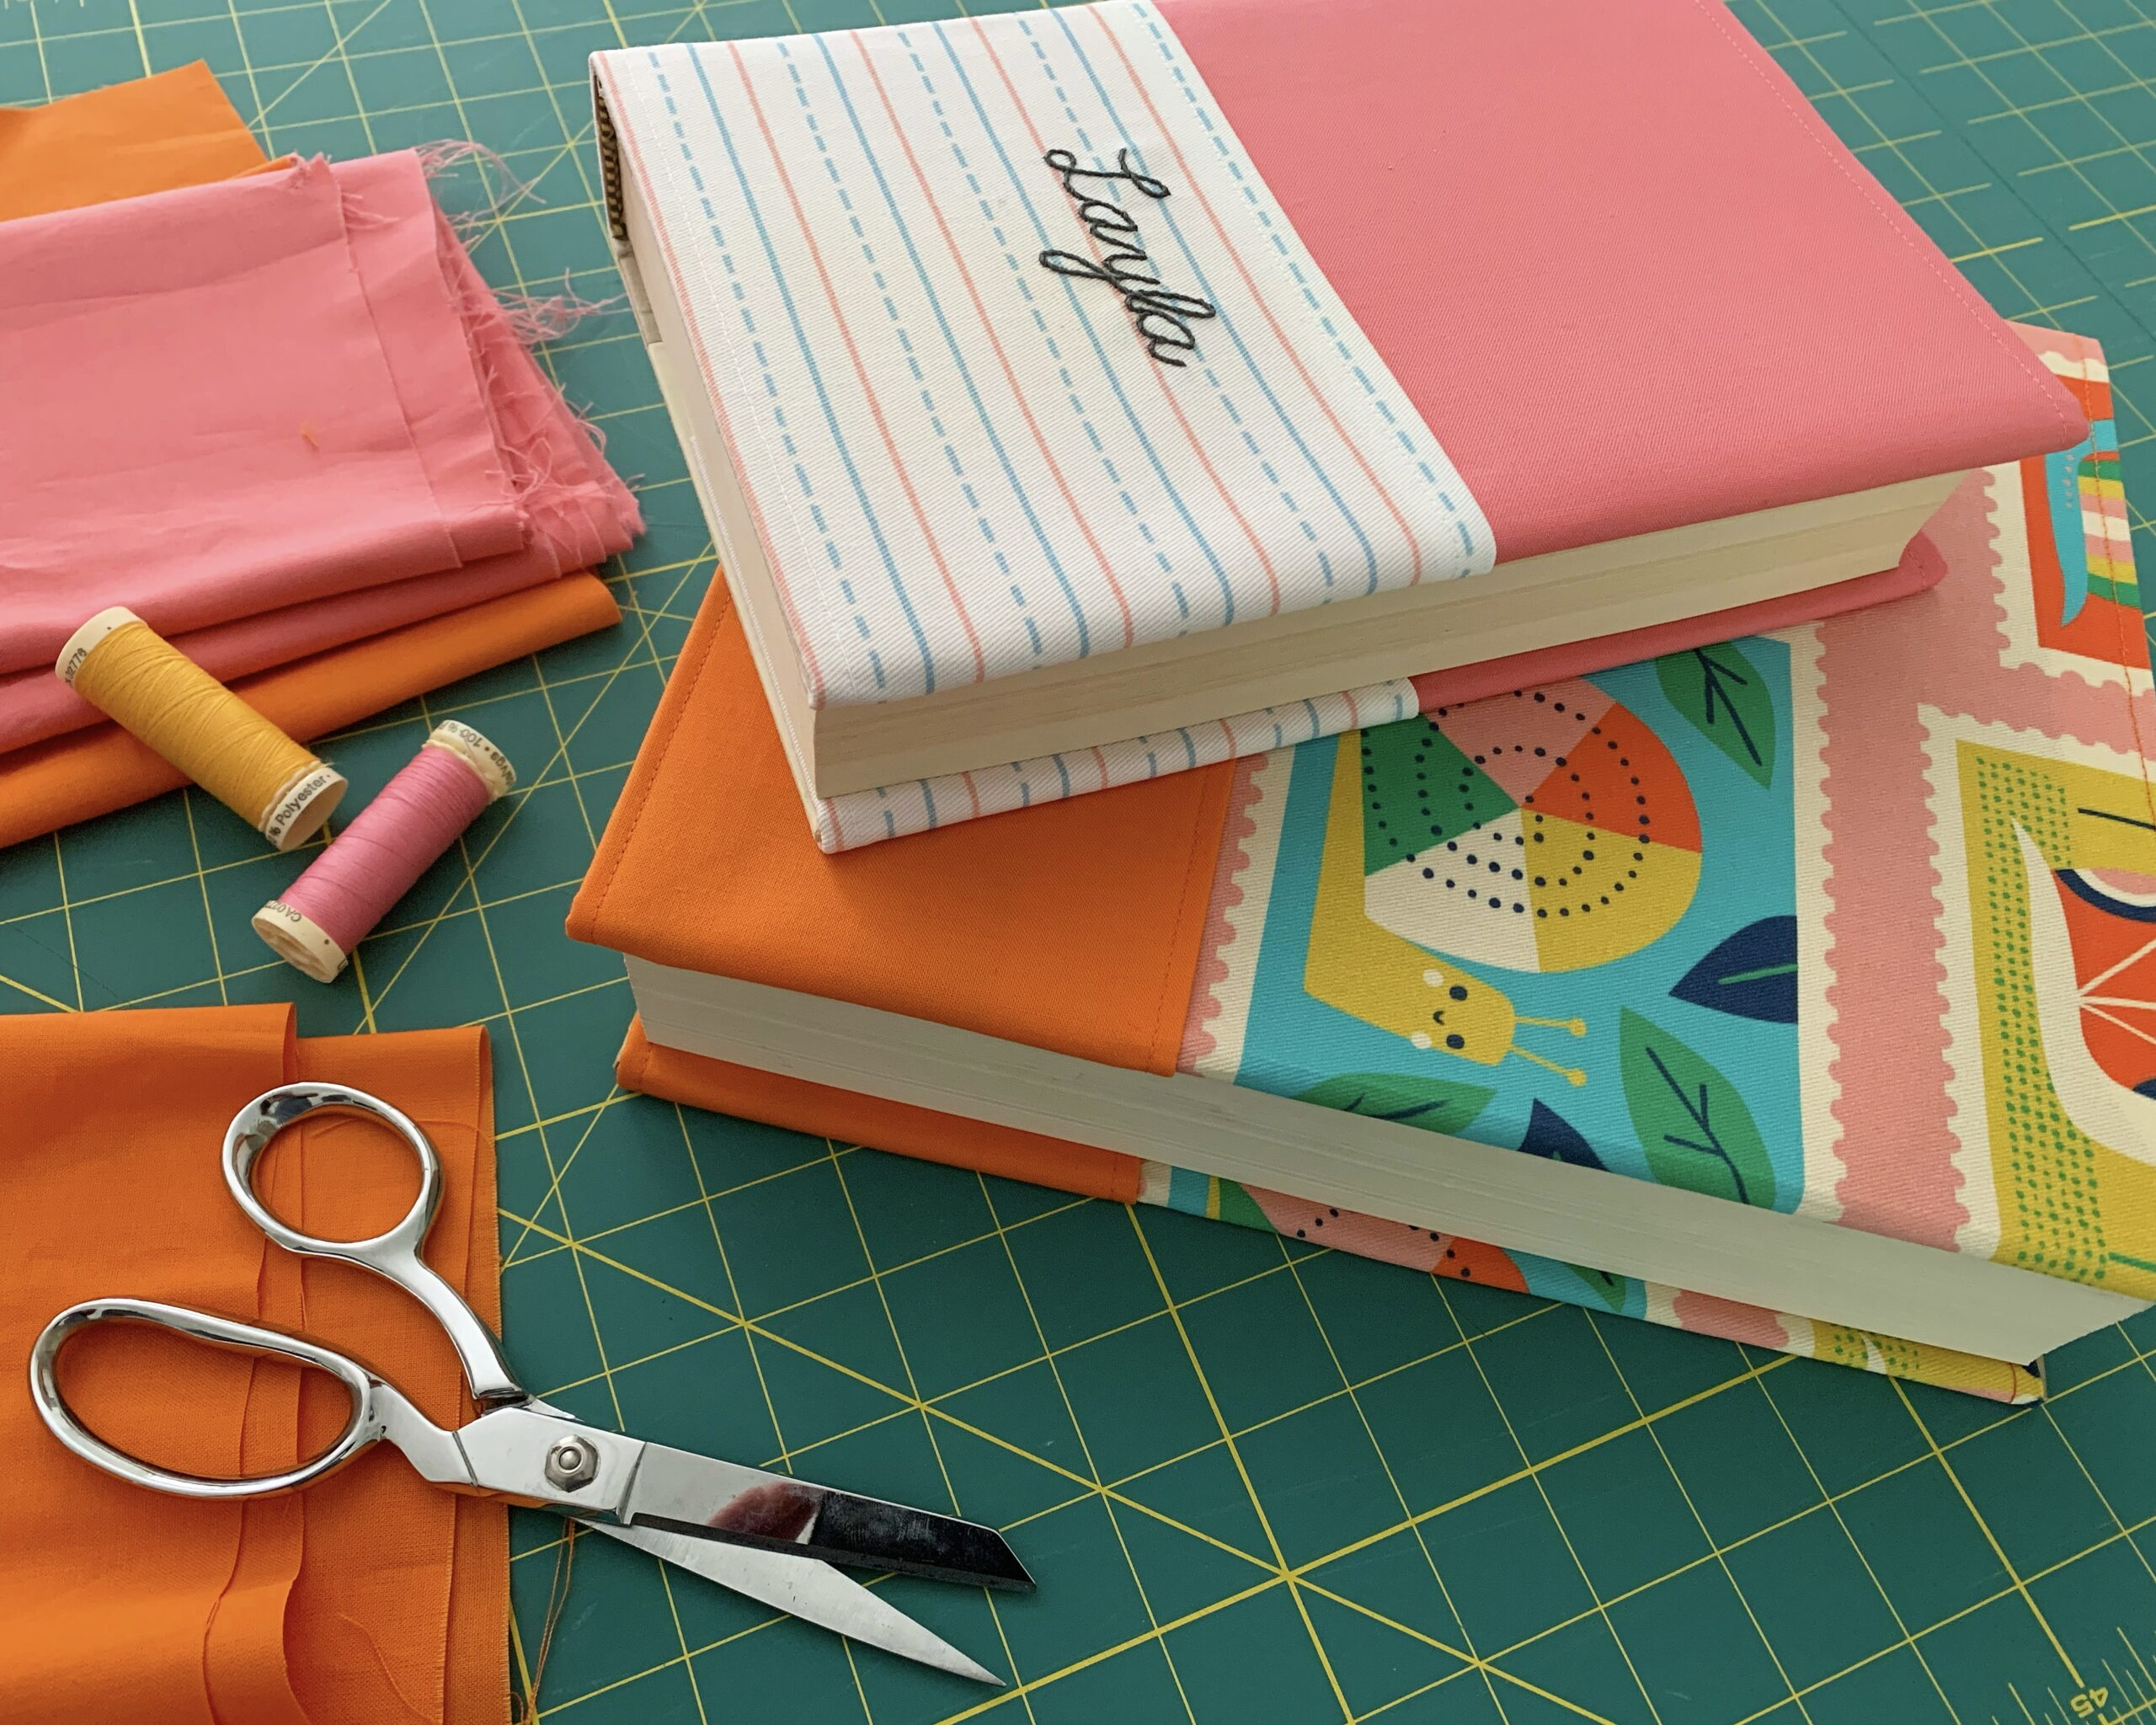 Books with brightly colored handmade book covers